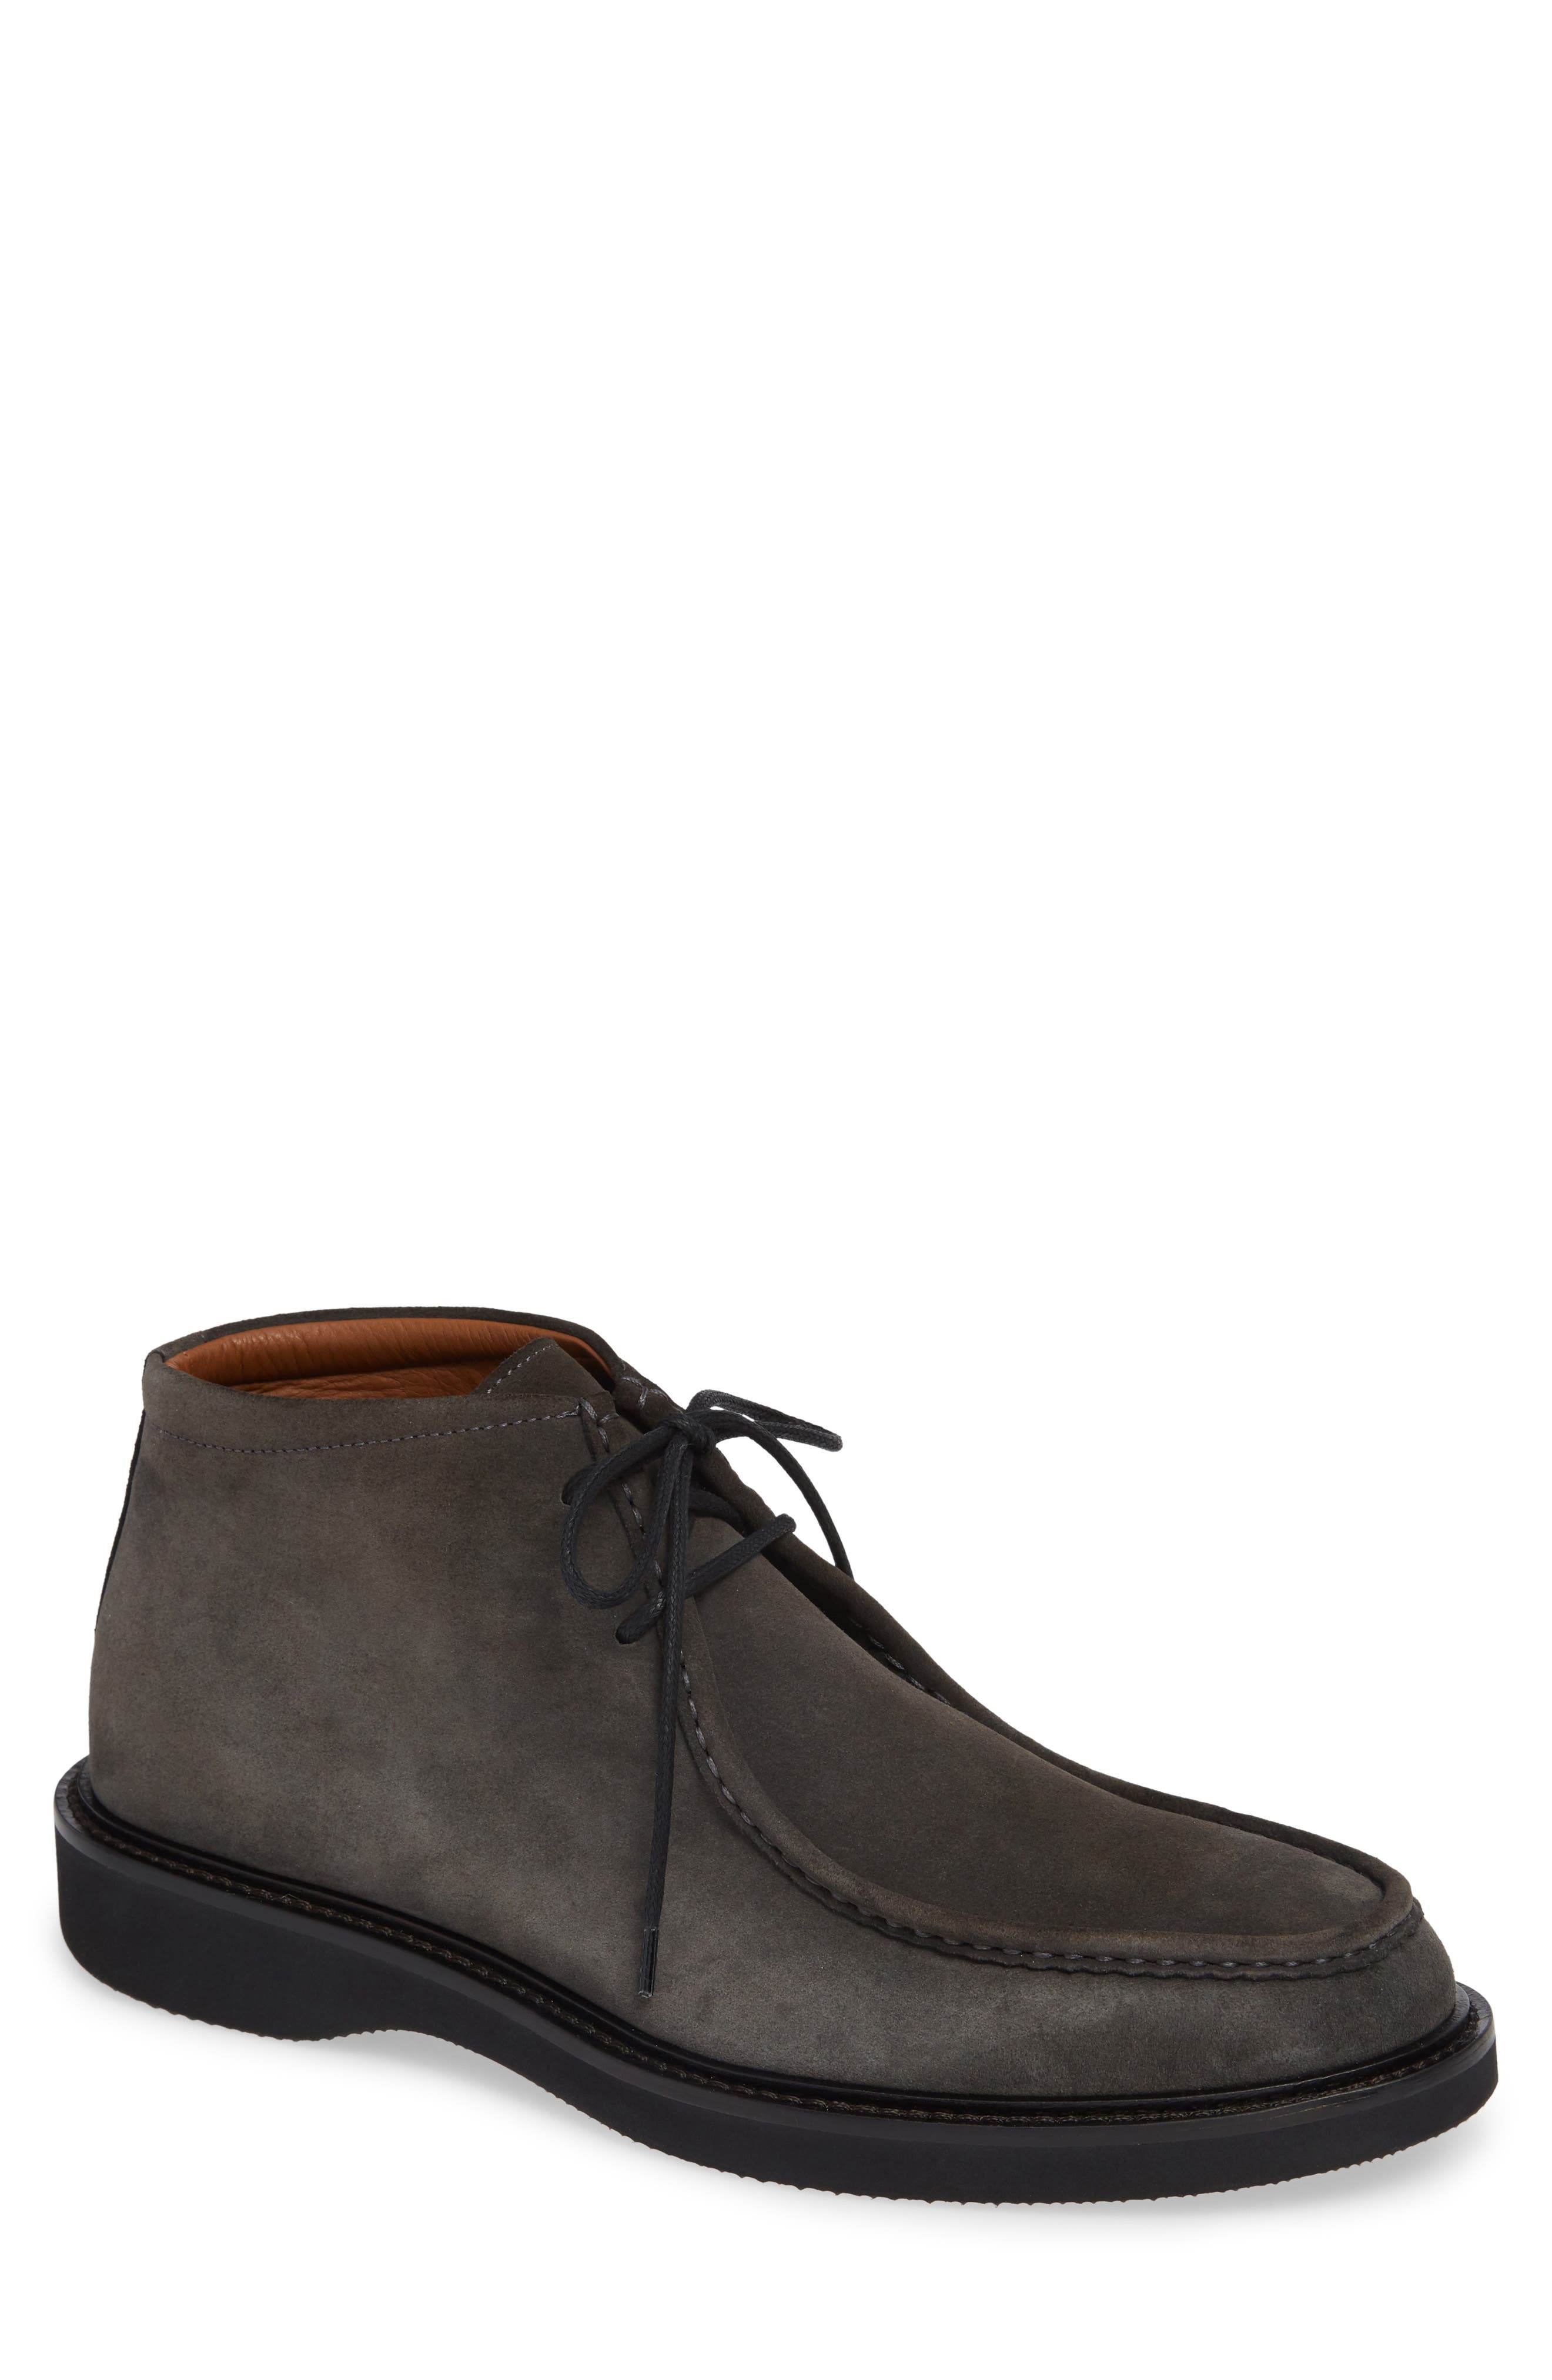 AQUATALIA Men'S Kyle Suede Lace-Up Chukka Boots in Dark Charcoal Suede